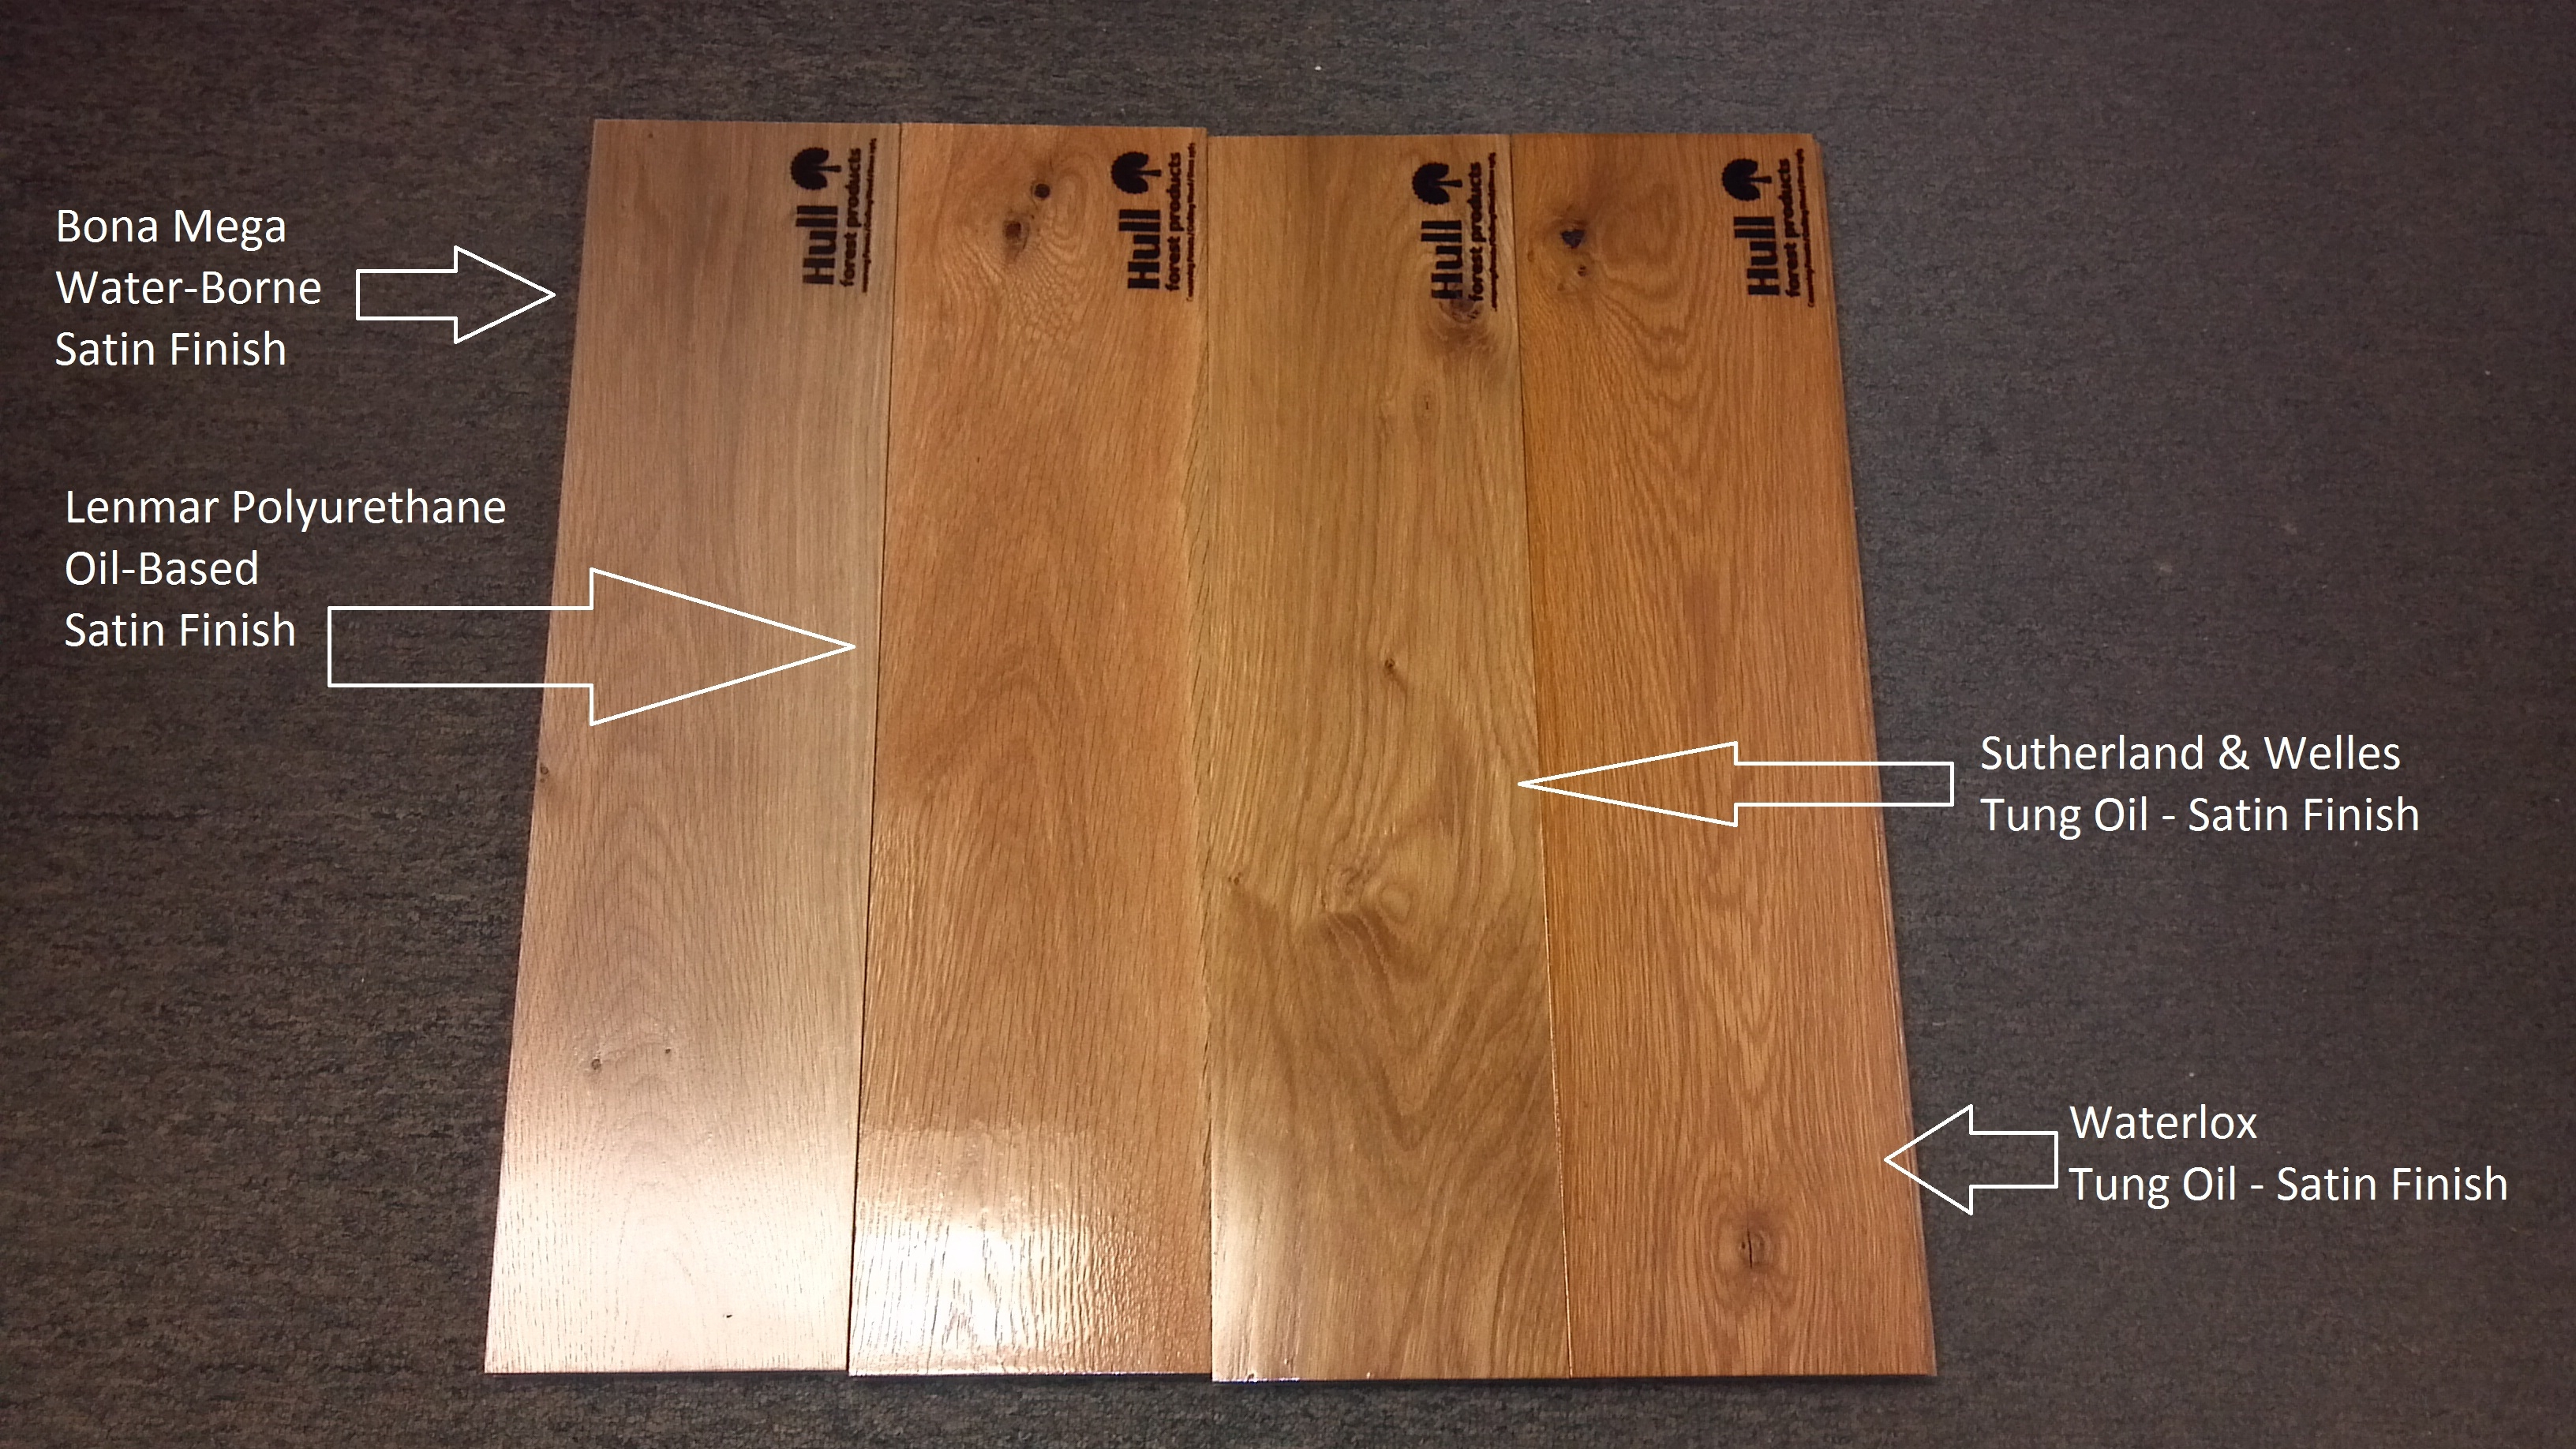 Wood Floor Types Comparison